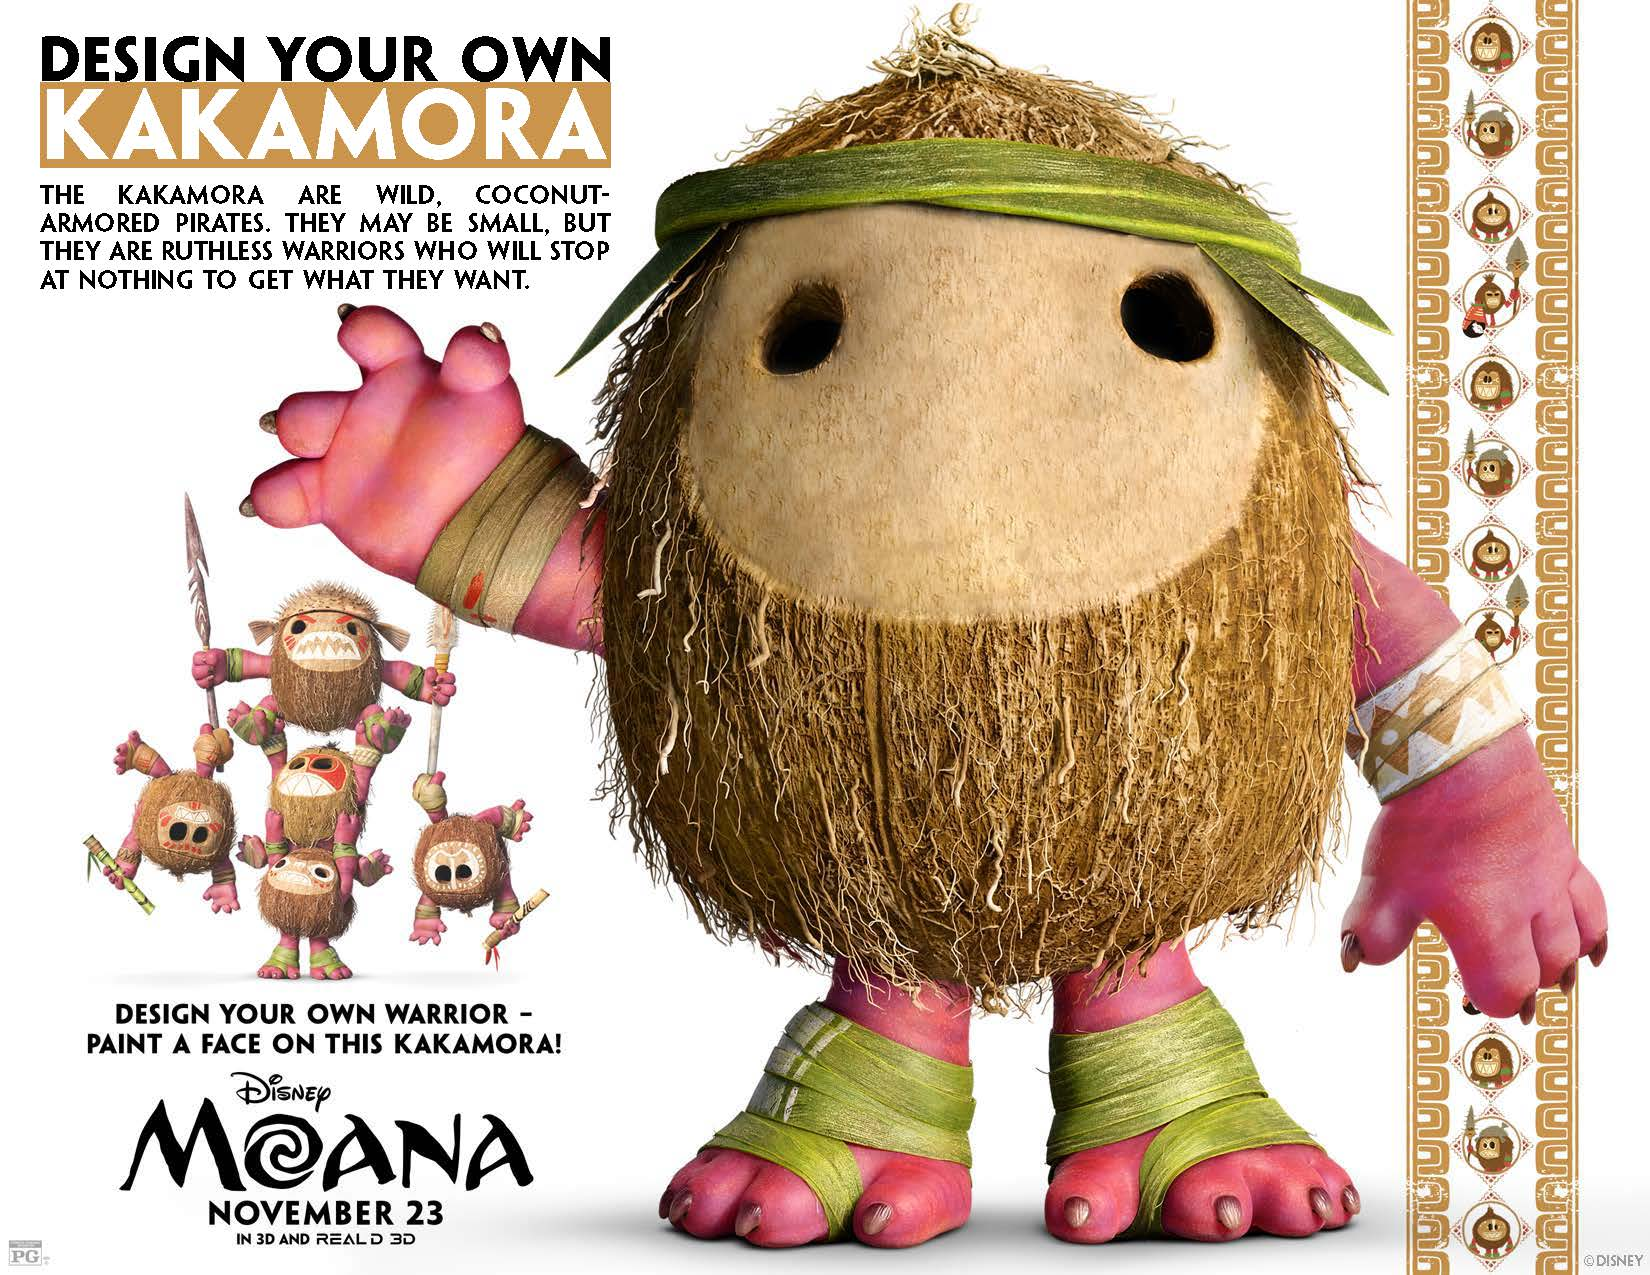 Moana Party Food Ideas  Kakamora Coconut Treats Paging